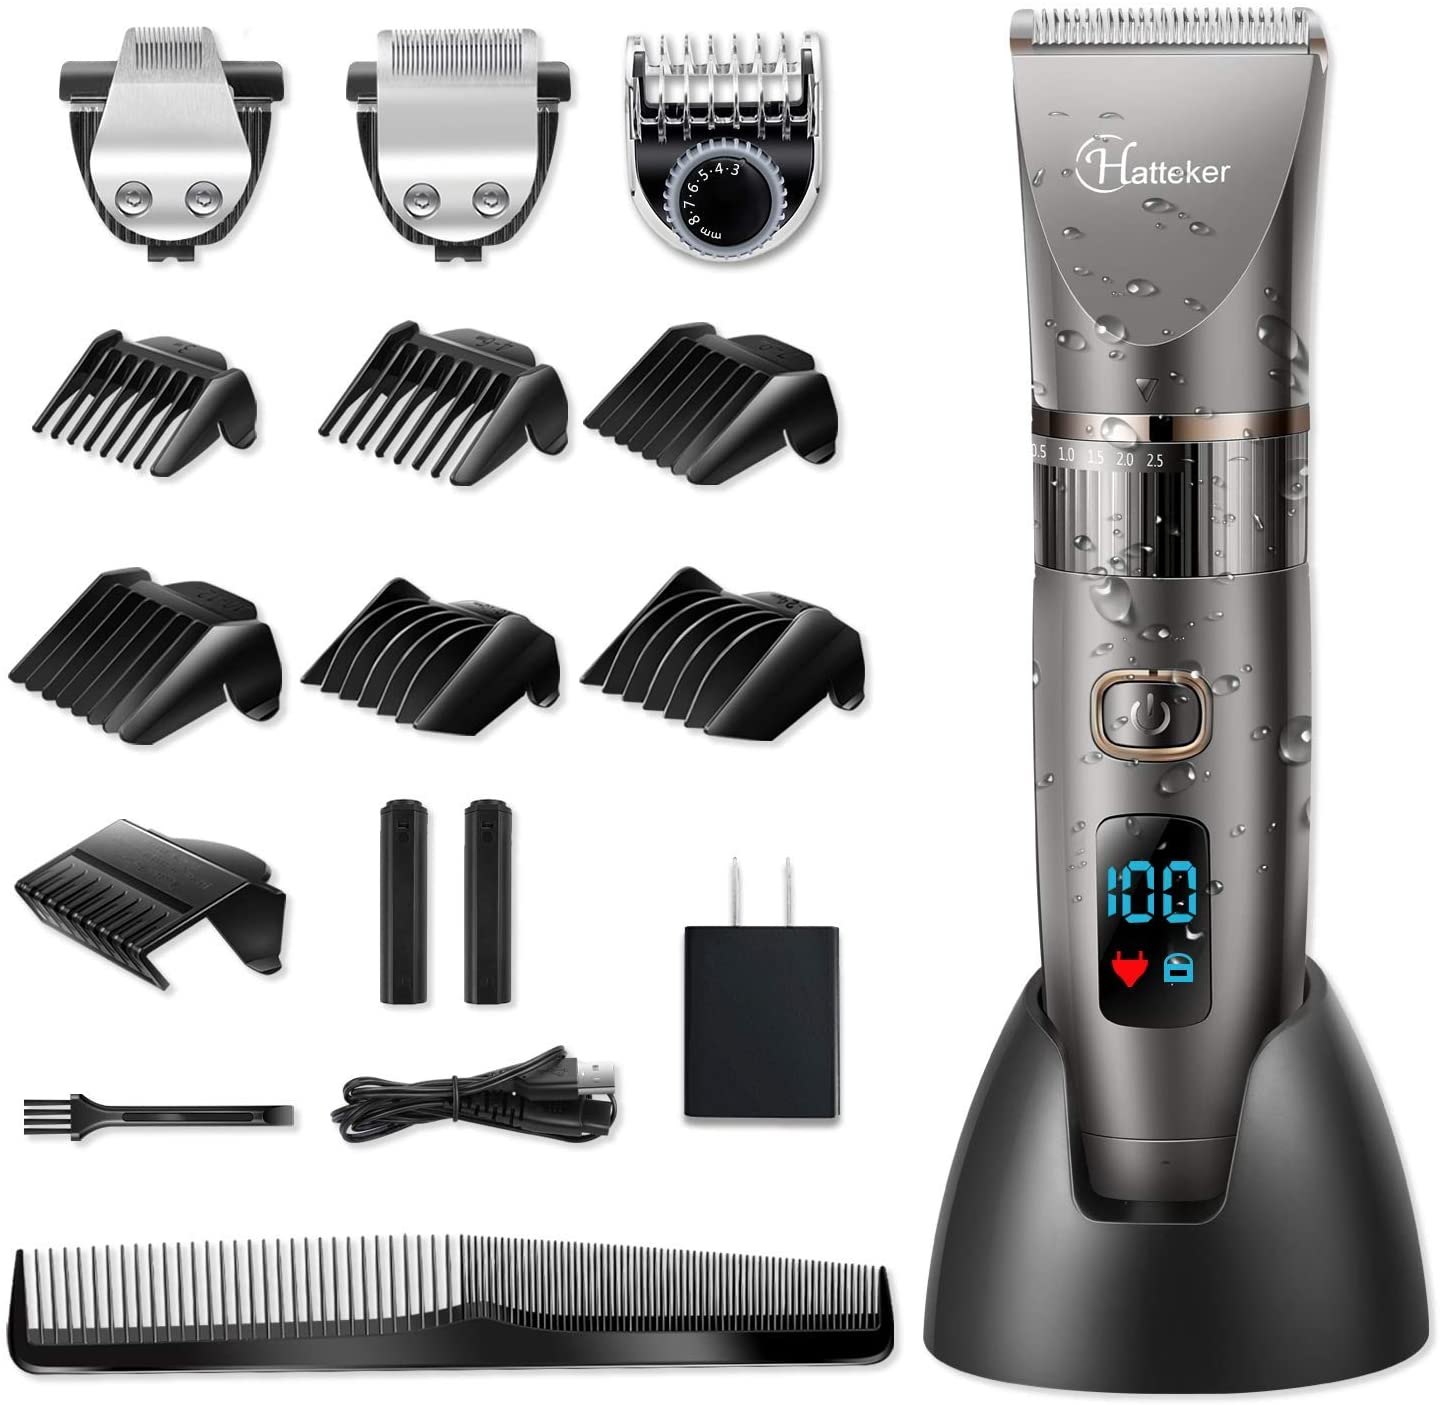 Hatteker Men's 3-In-1 Beard Trimmer